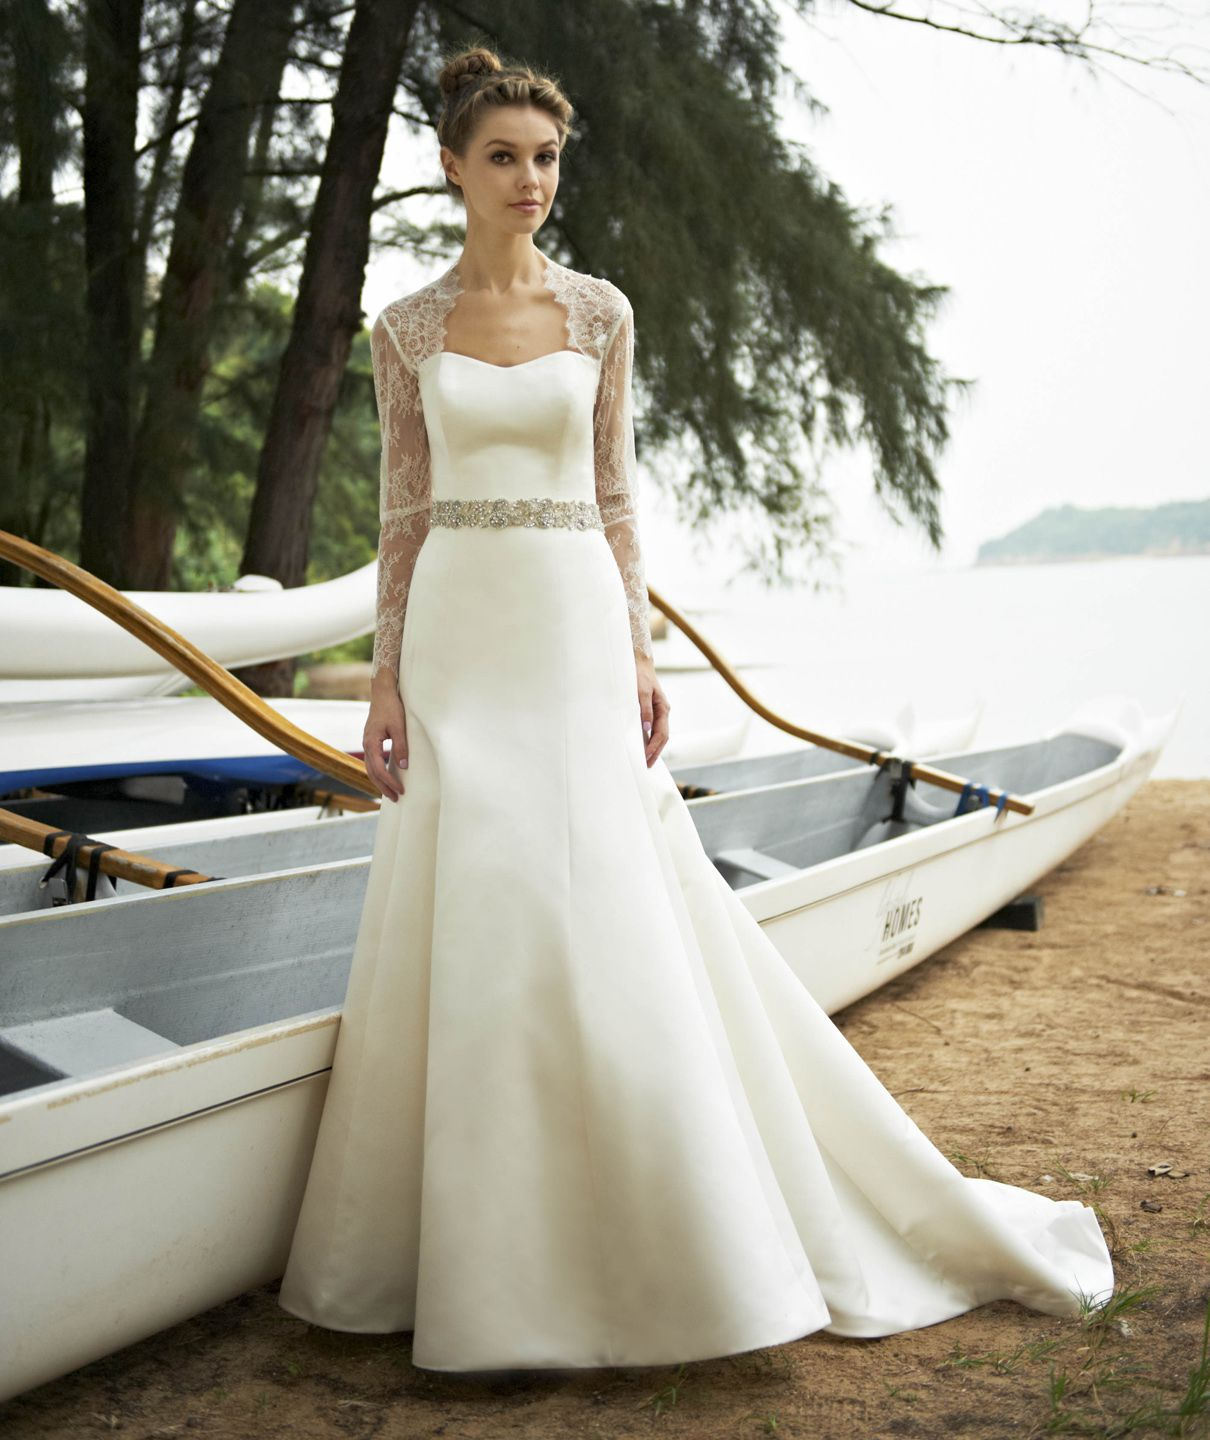 Grace - Mermaid, Fit n flare, Strapless, Classic, Sweetheart, Lace ...